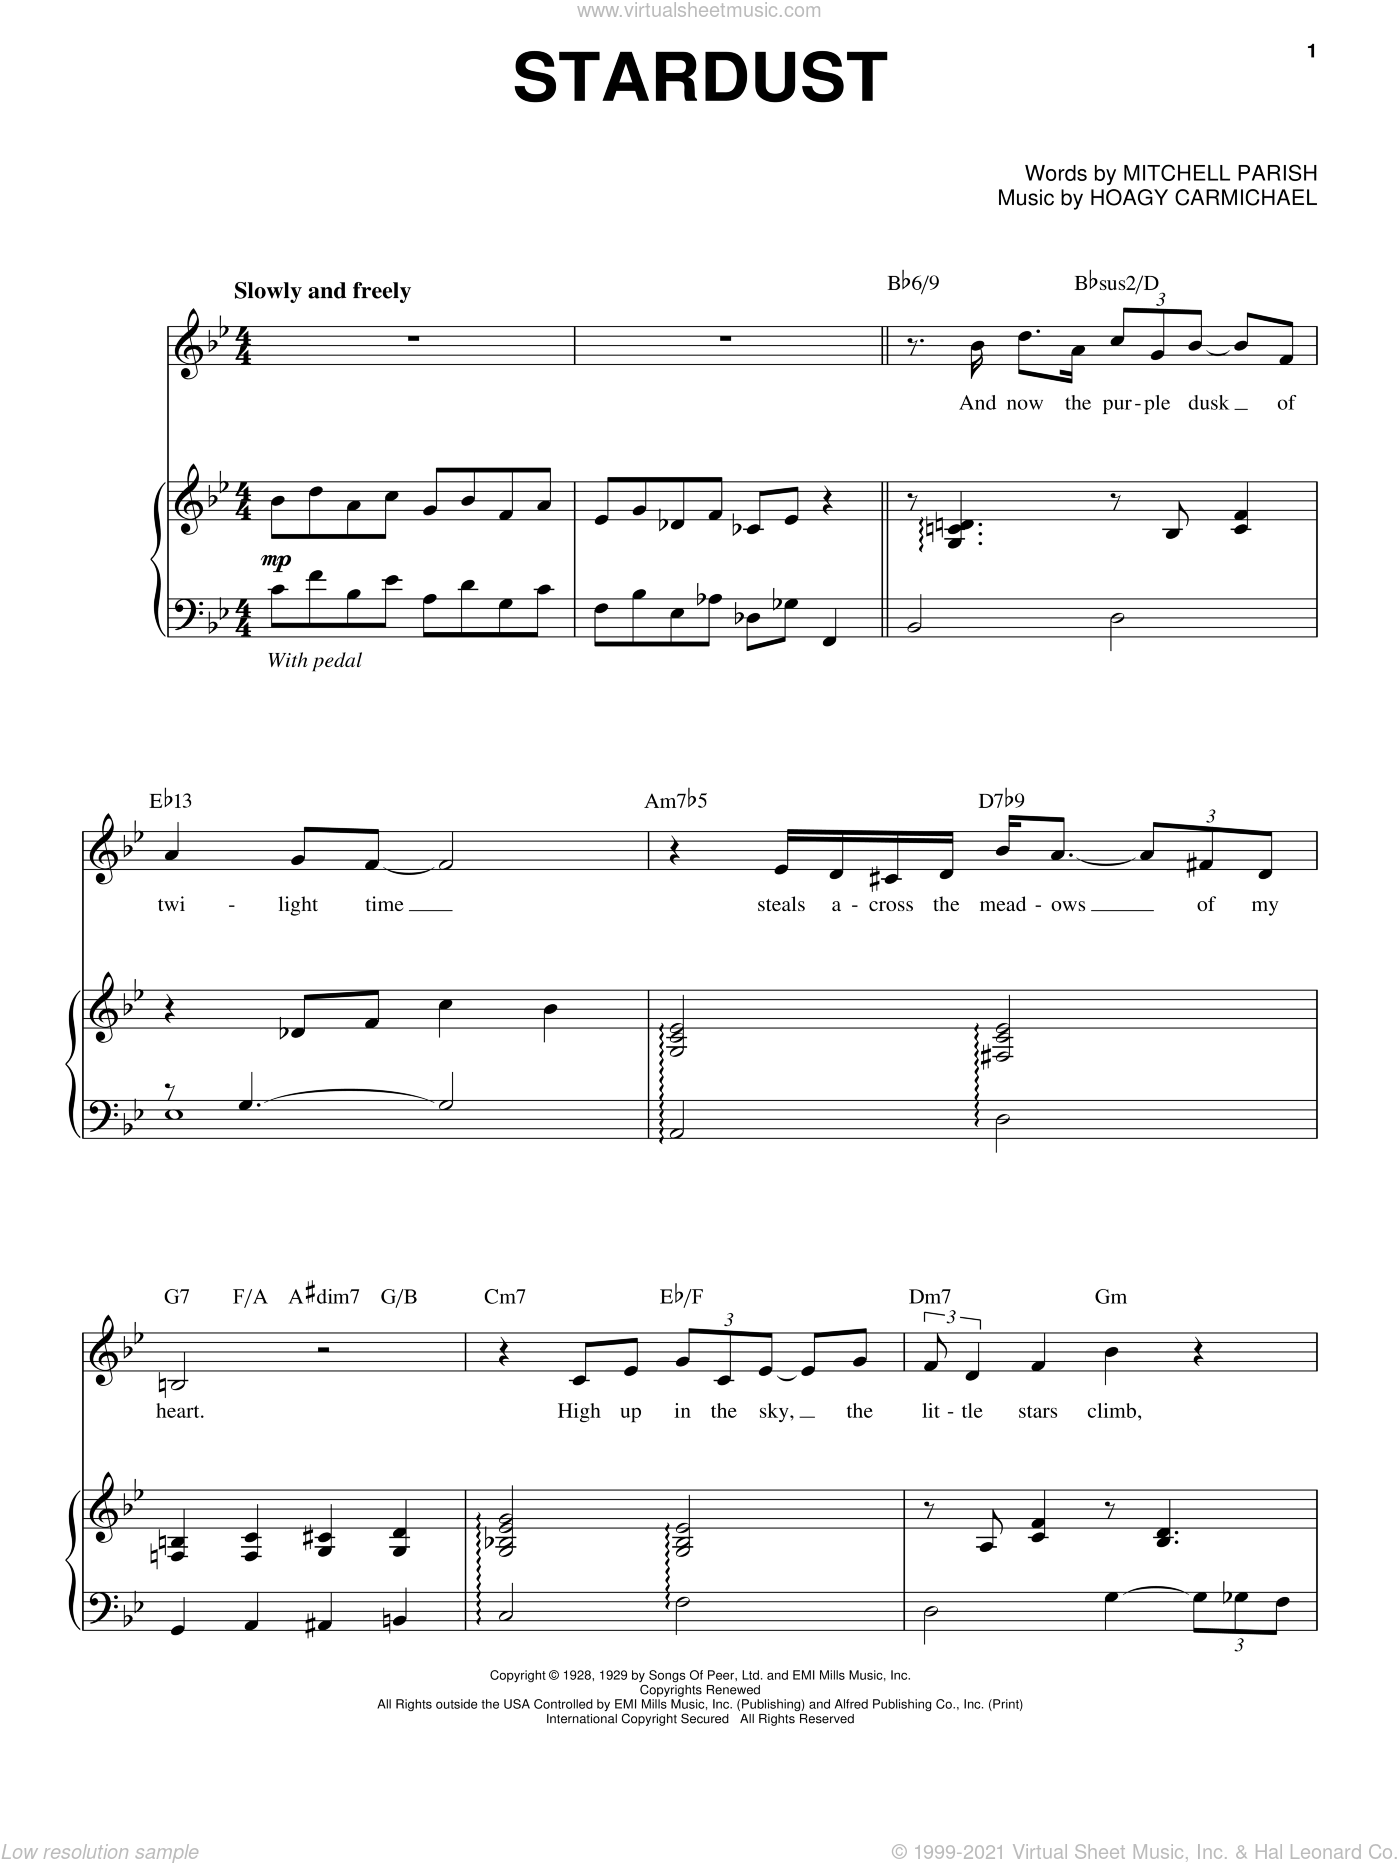 Stardust sheet music for voice and piano by Steve Tyrell, Hoagy Carmichael and Mitchell Parish, intermediate skill level